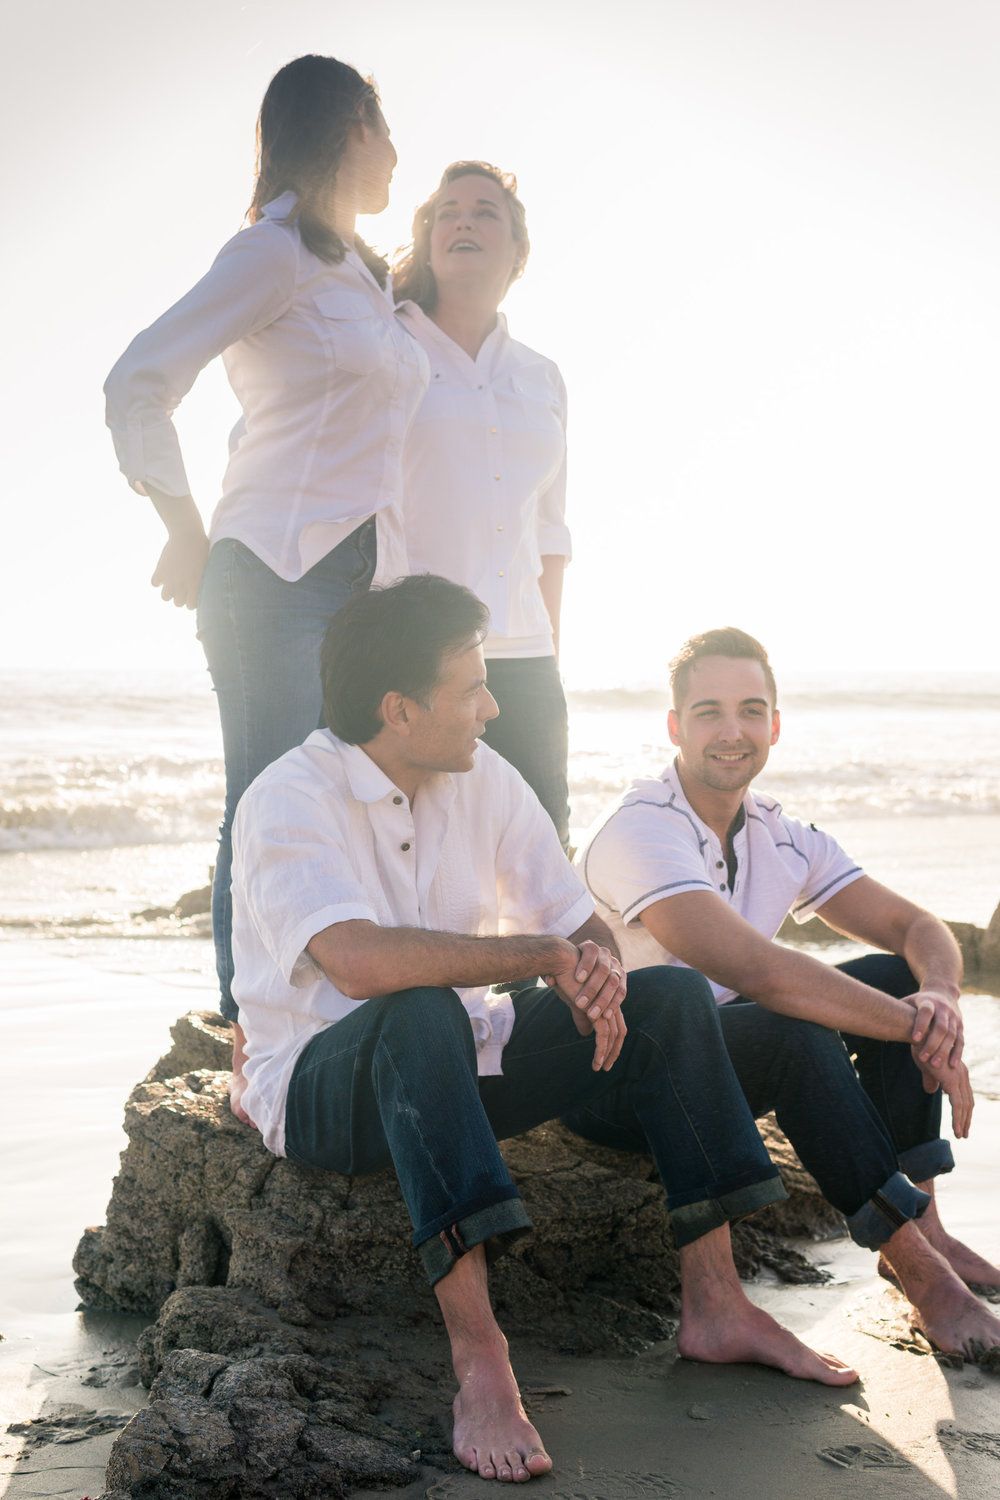 Family portraits being backlit during Golden hour at Crystal Cove State Beach in Newport